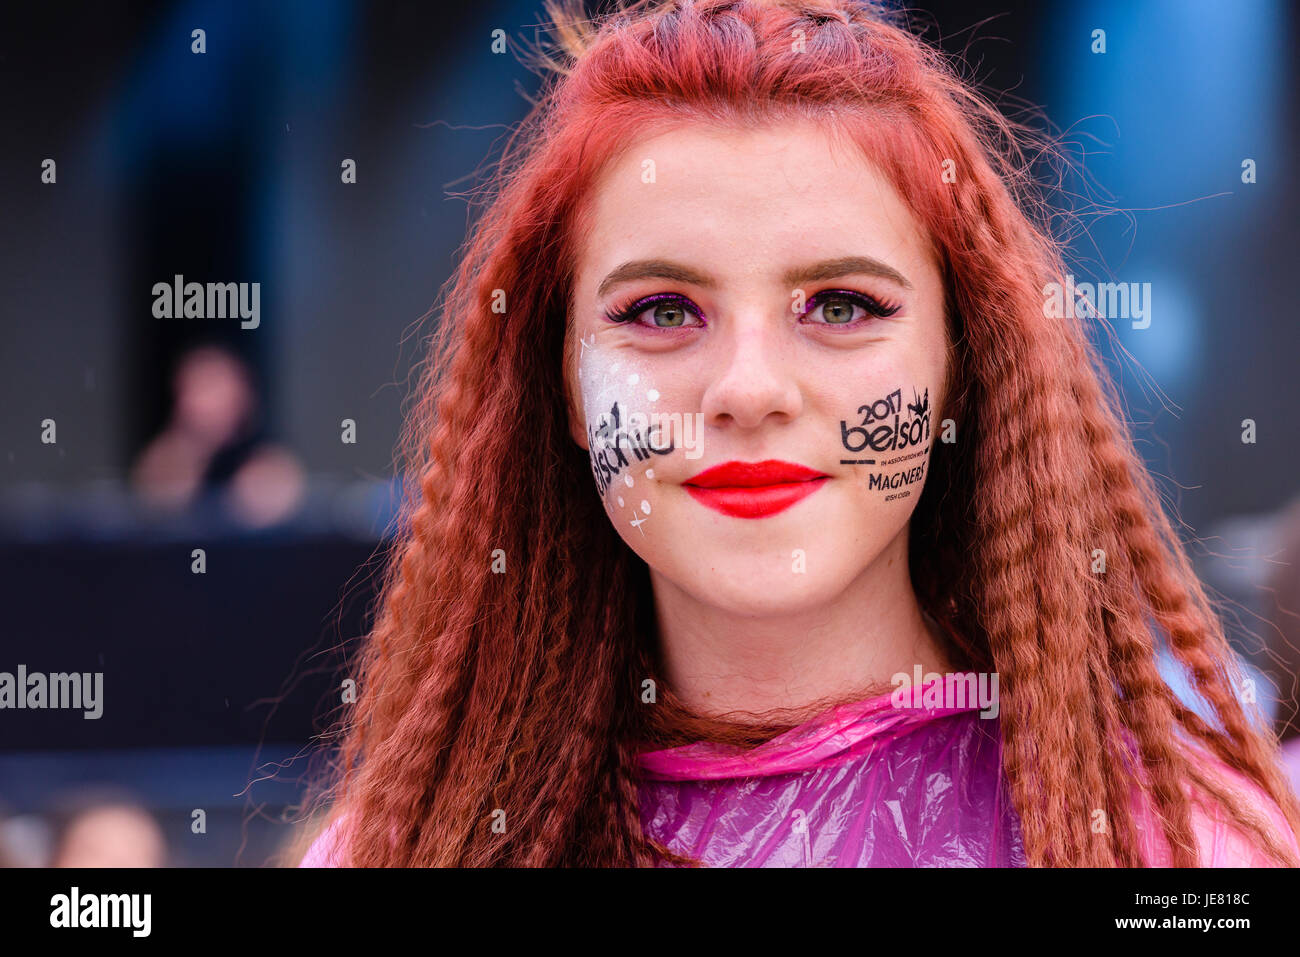 Belfast, Northern Ireland. 22/06/2017 - A pretty young lady with red hair and lipstick has Belsonic stencils on - Stock Image